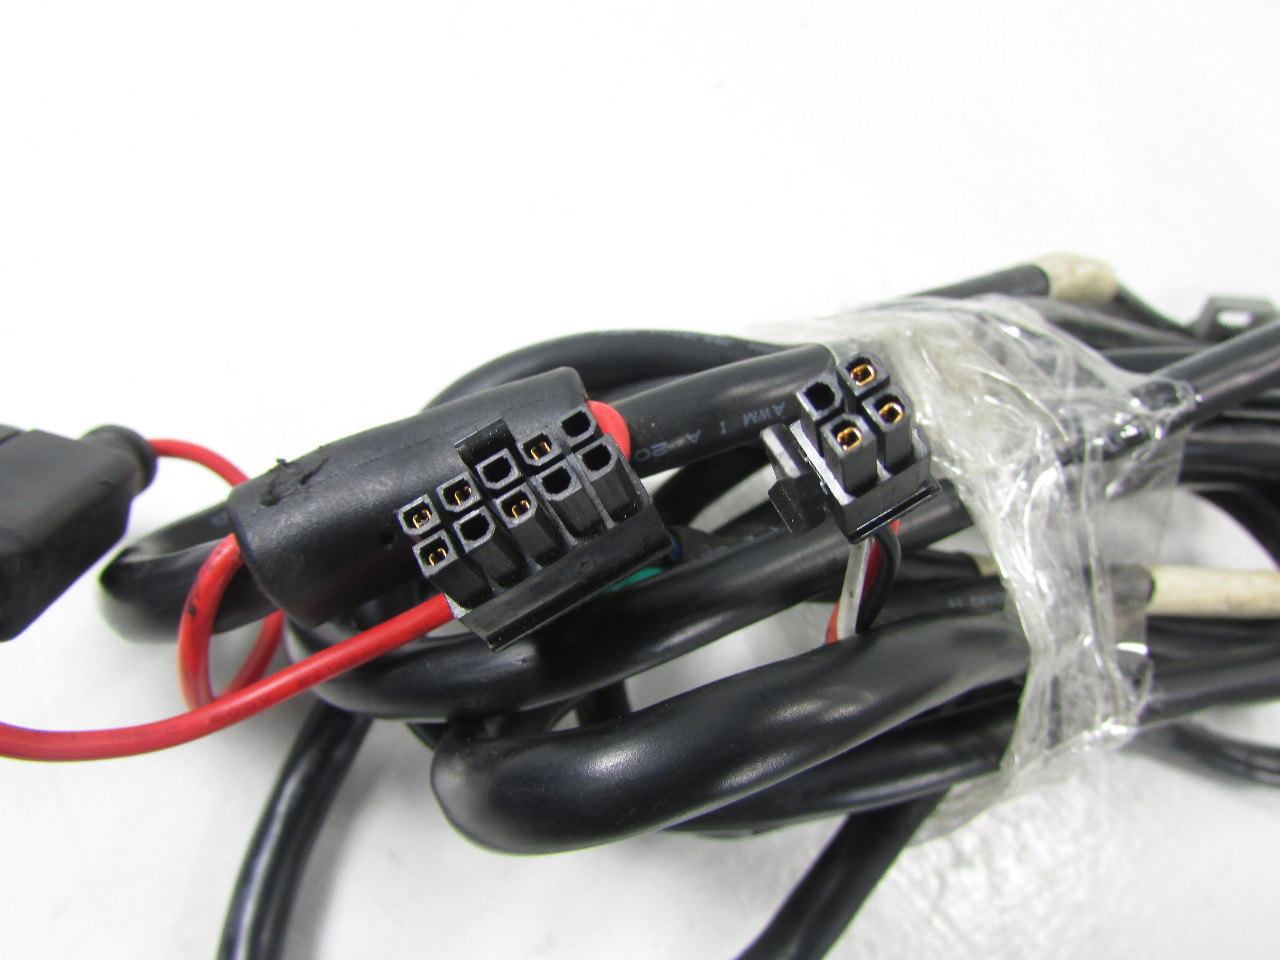 Which Color Wire In The Harness Powers The Servo Motor From The Ecu